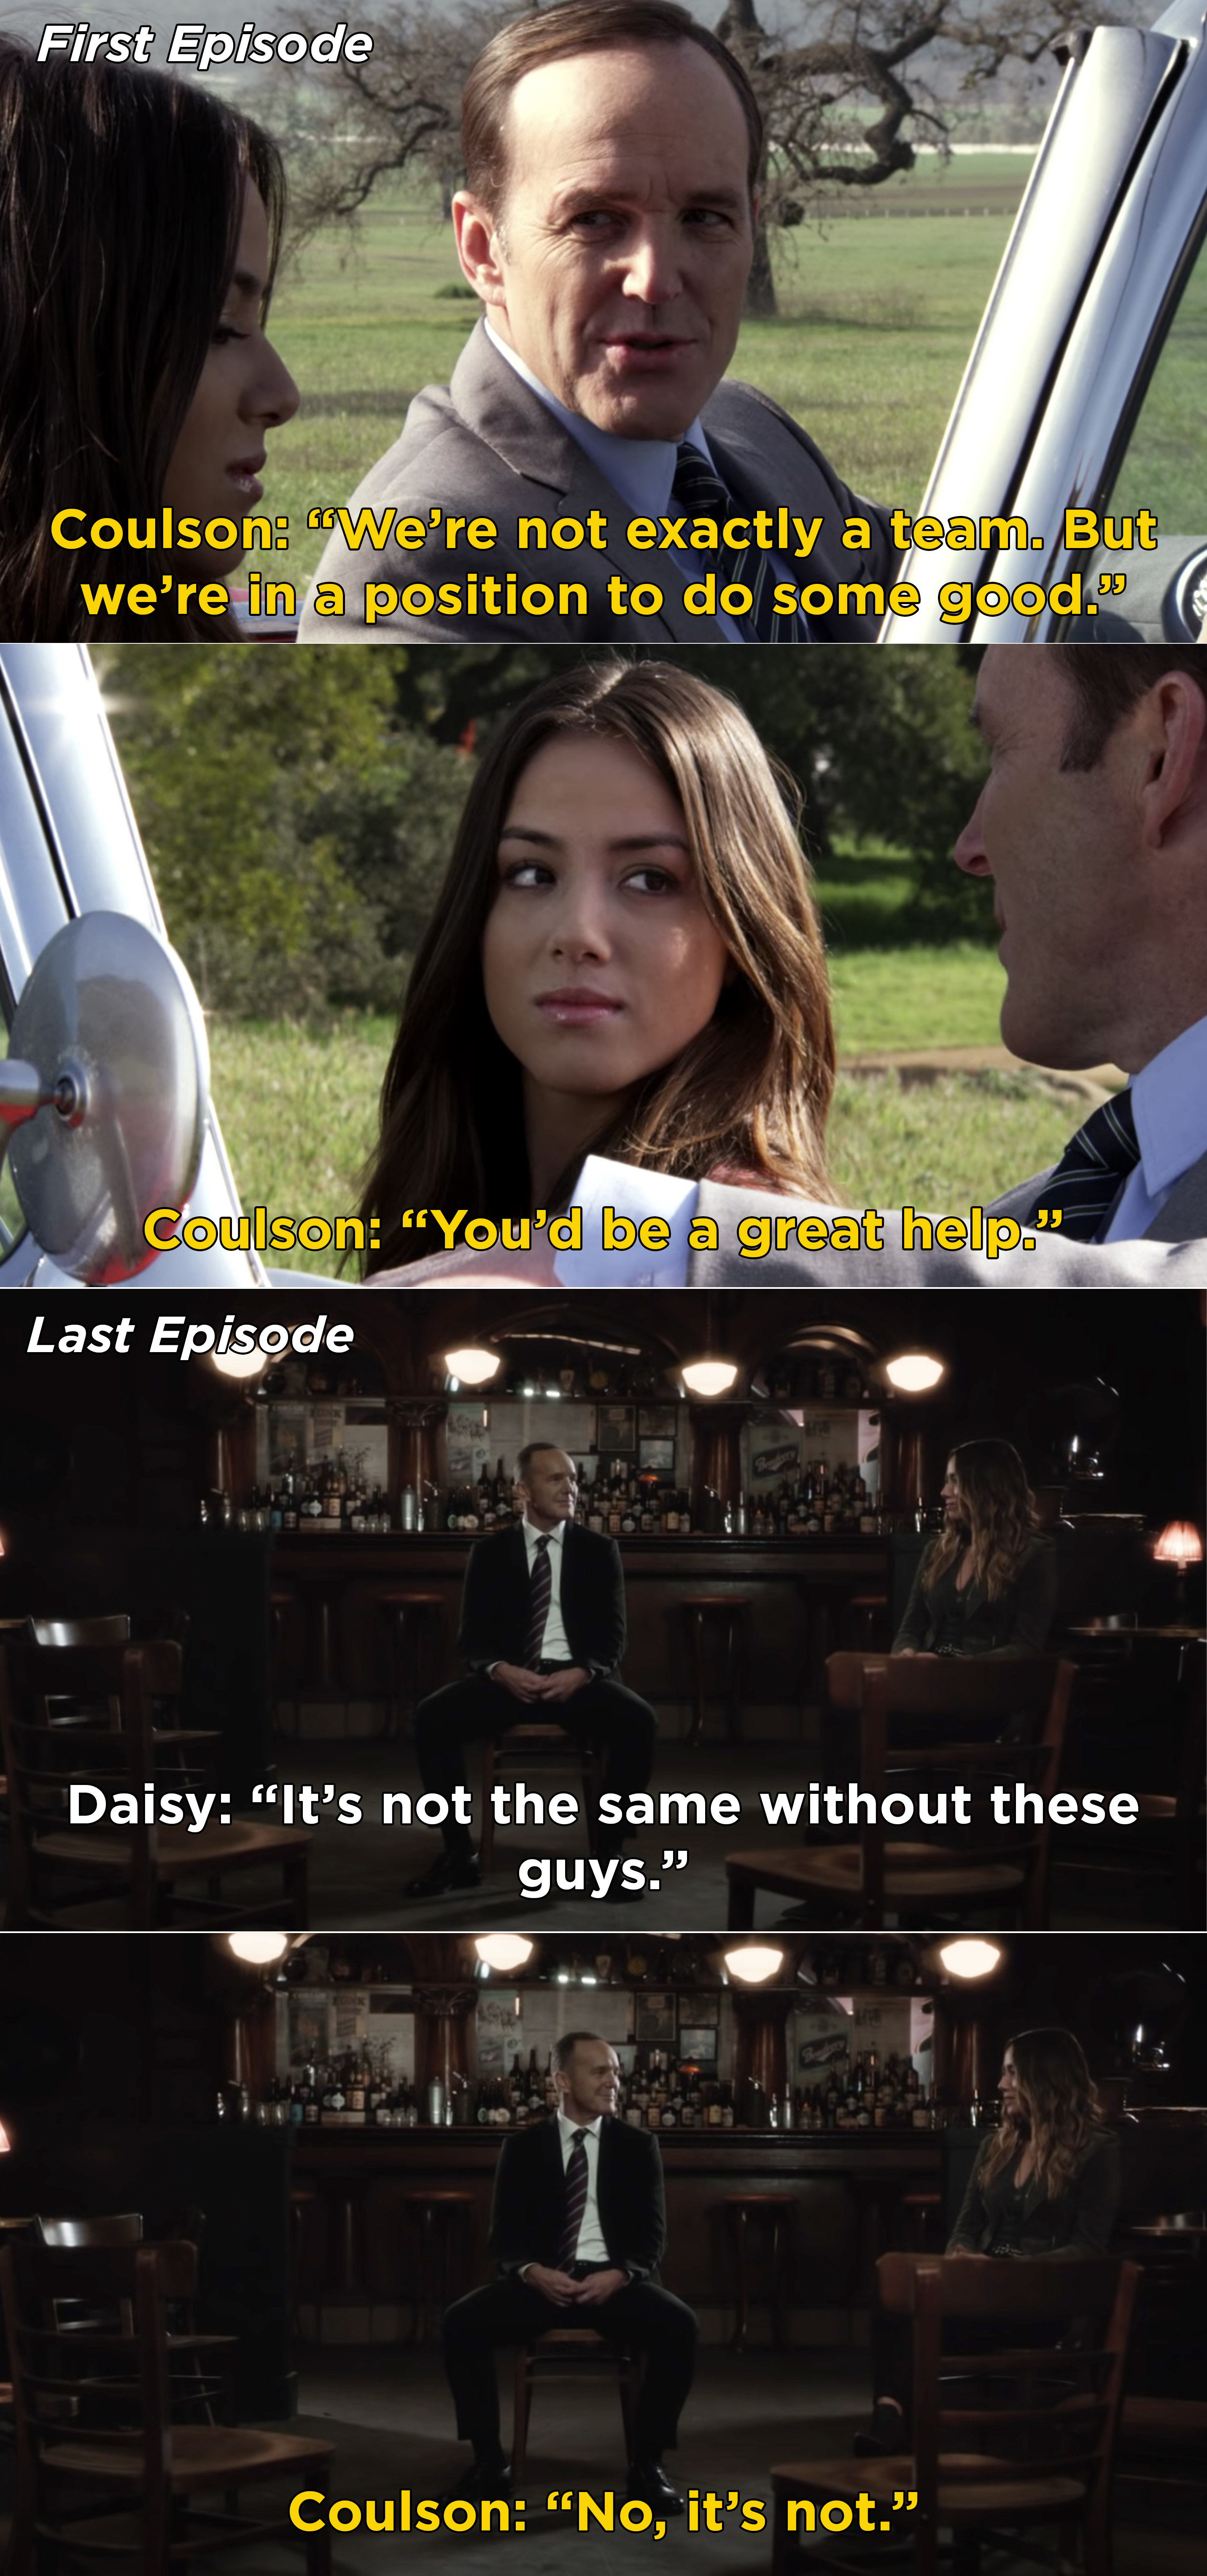 Coulson telling Daisy she should join the team, then Daisy, in the series finale, saying that the team isn't the same now that everyone is gone